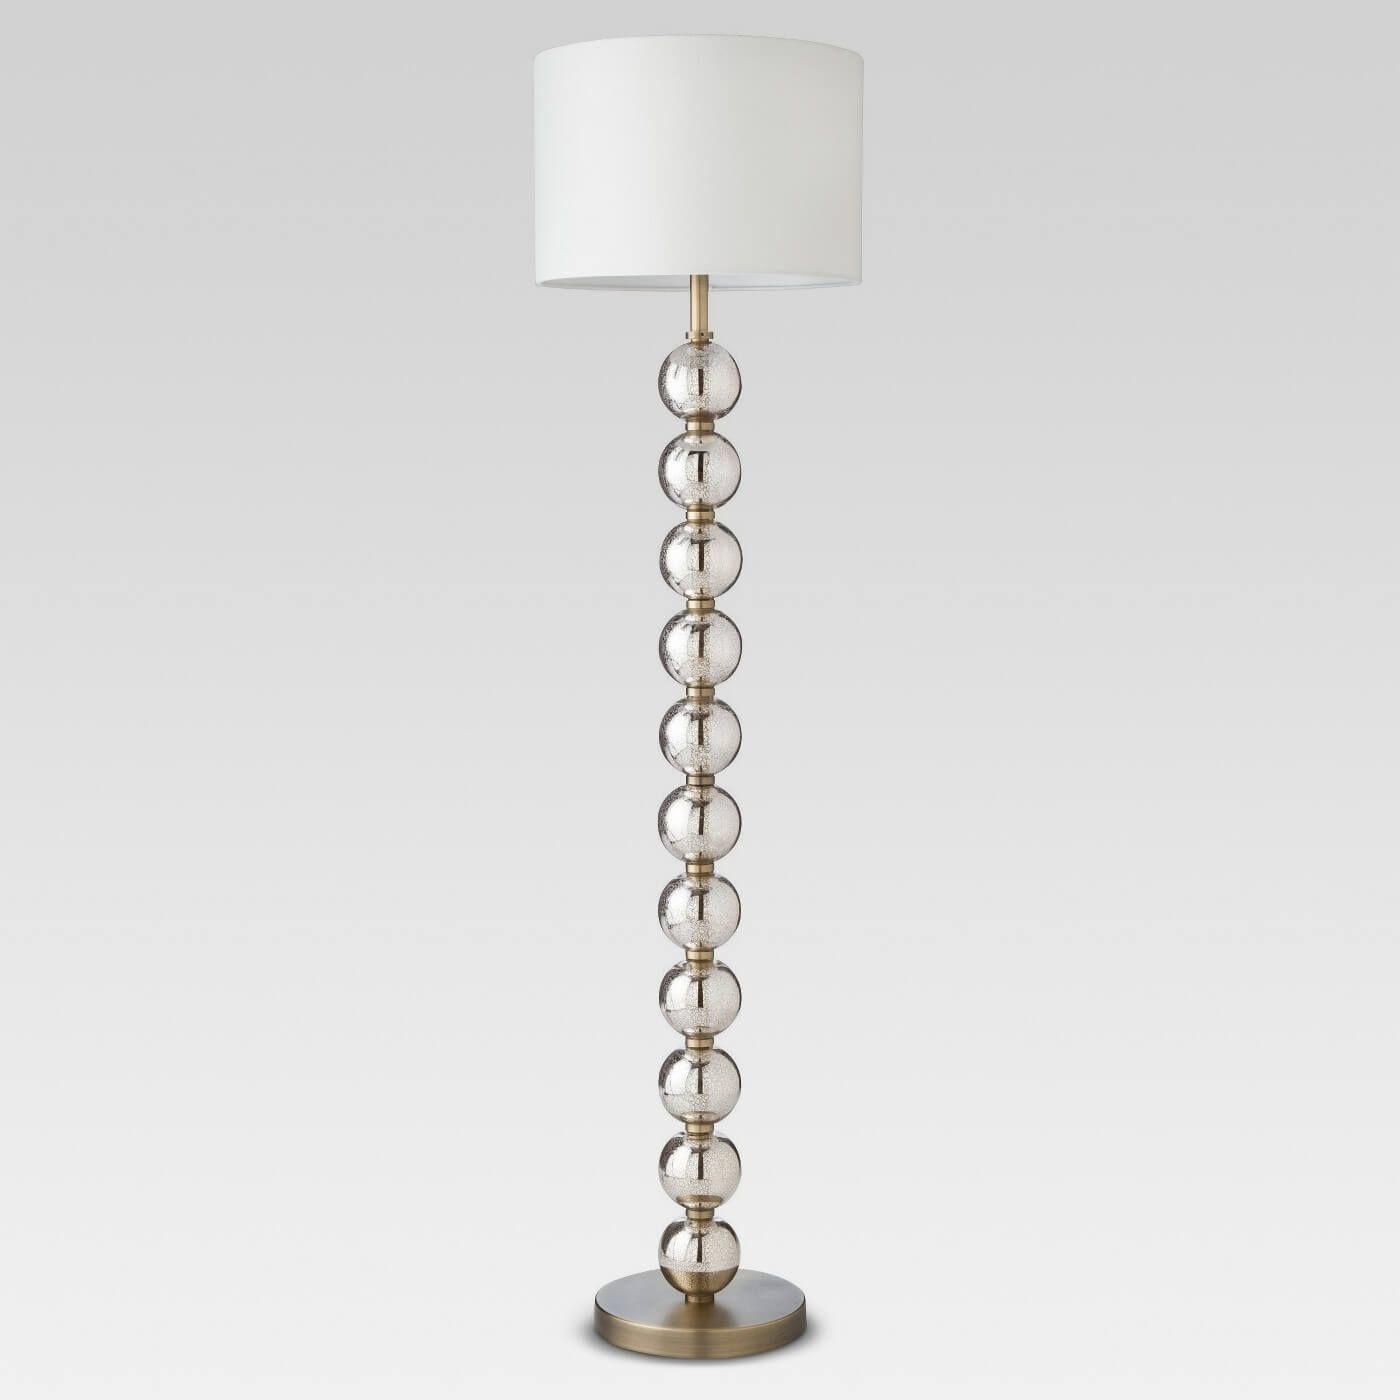 20 Target Floor Lamps That Are Chic Modern Statement Pieces I